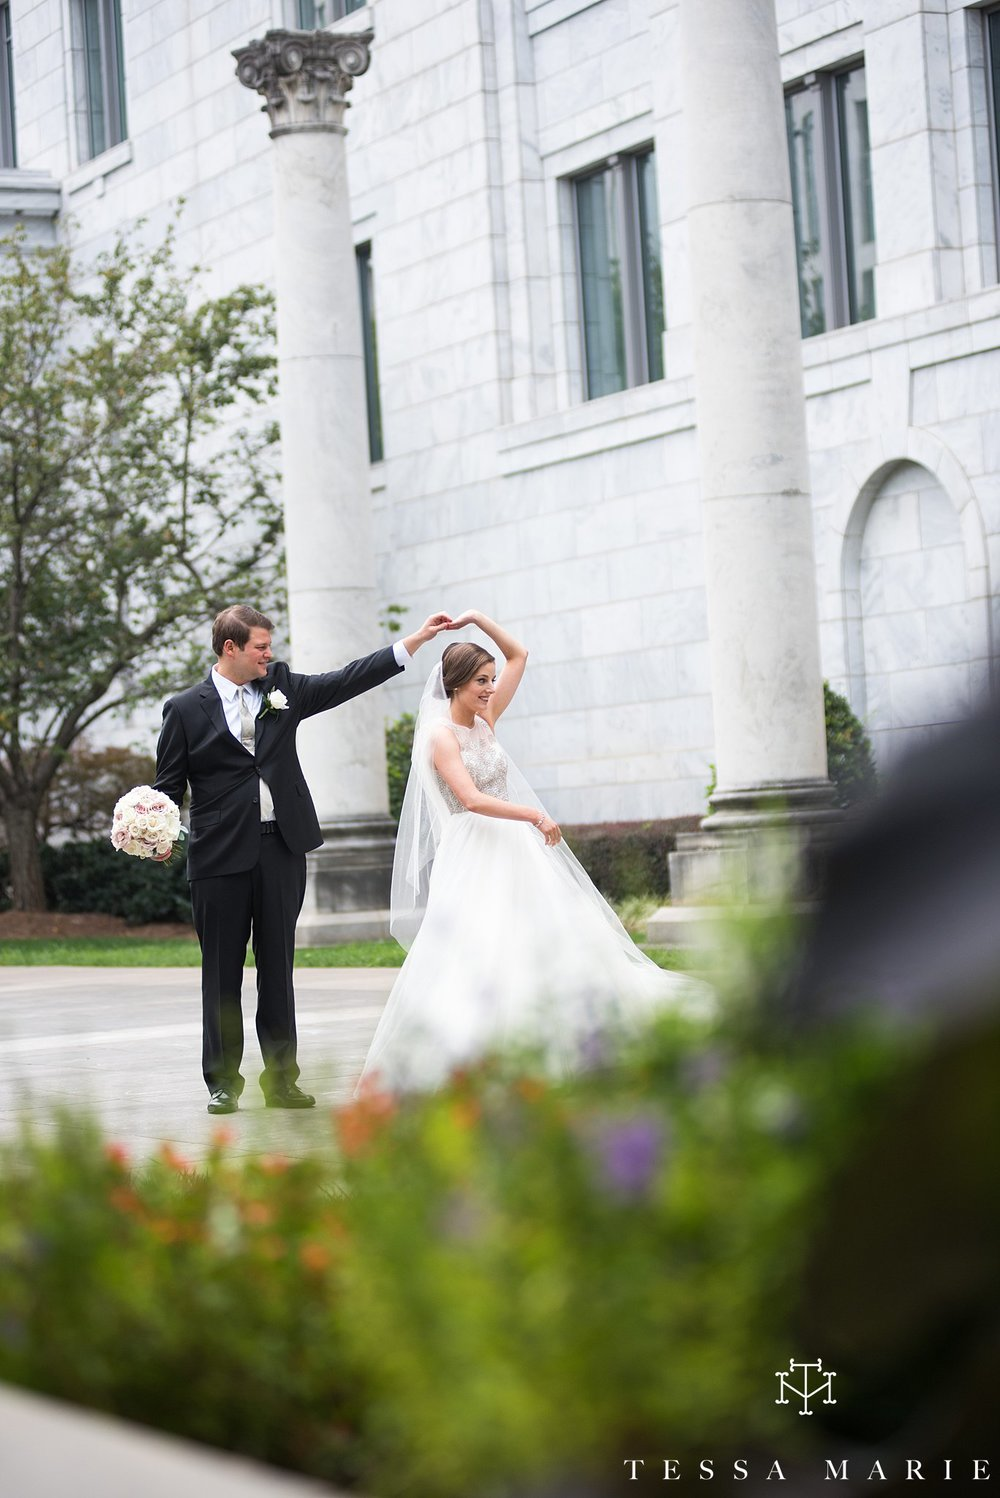 atlanta_wedding_photographer_tessa_marie_weddings_lowes_hotel_peachtree_midtown_fall_wedding_0253.jpg